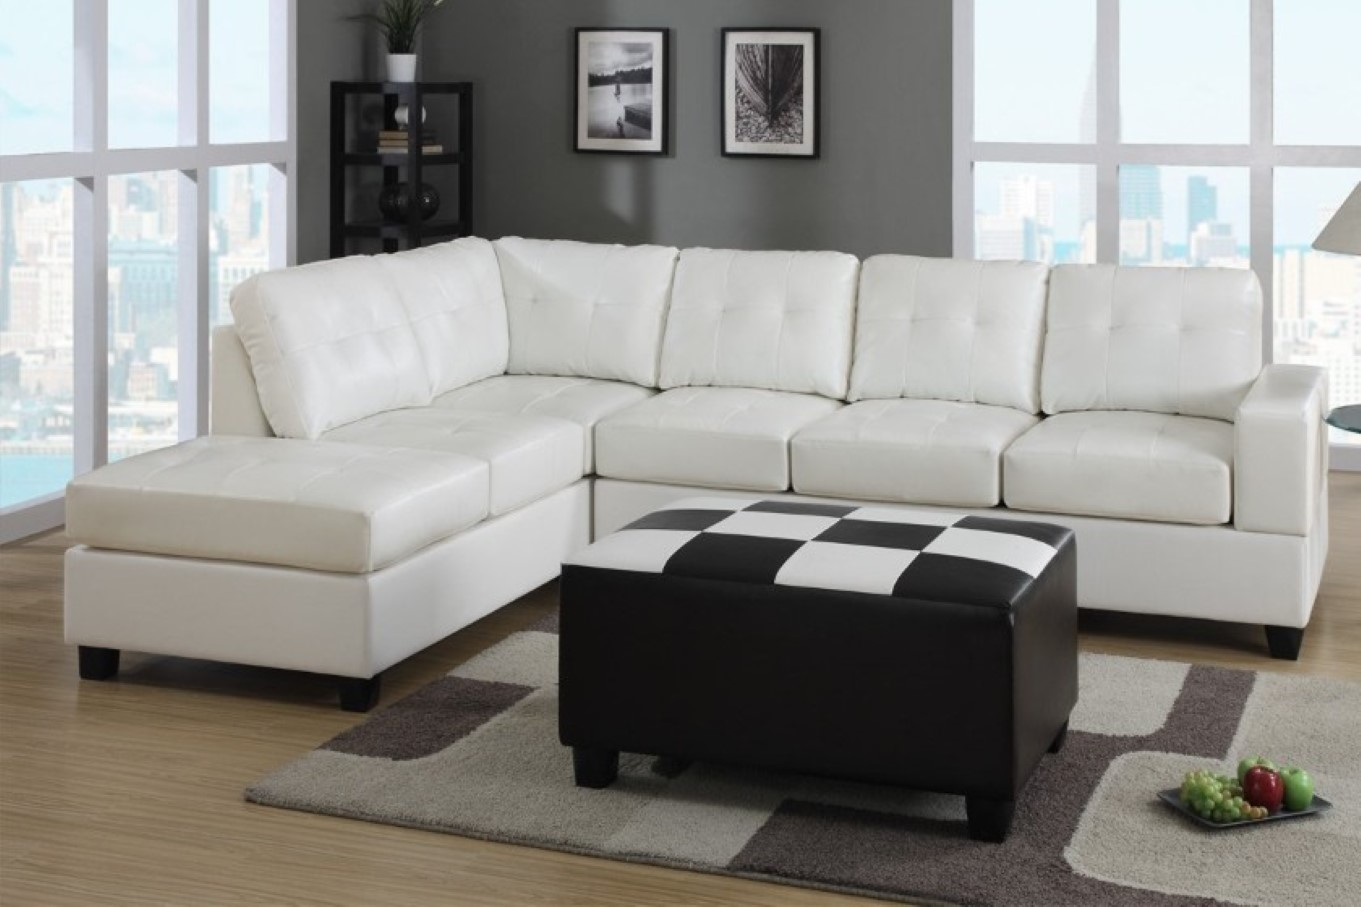 Superb Contemporary Sleeper Sofa Royals Courage